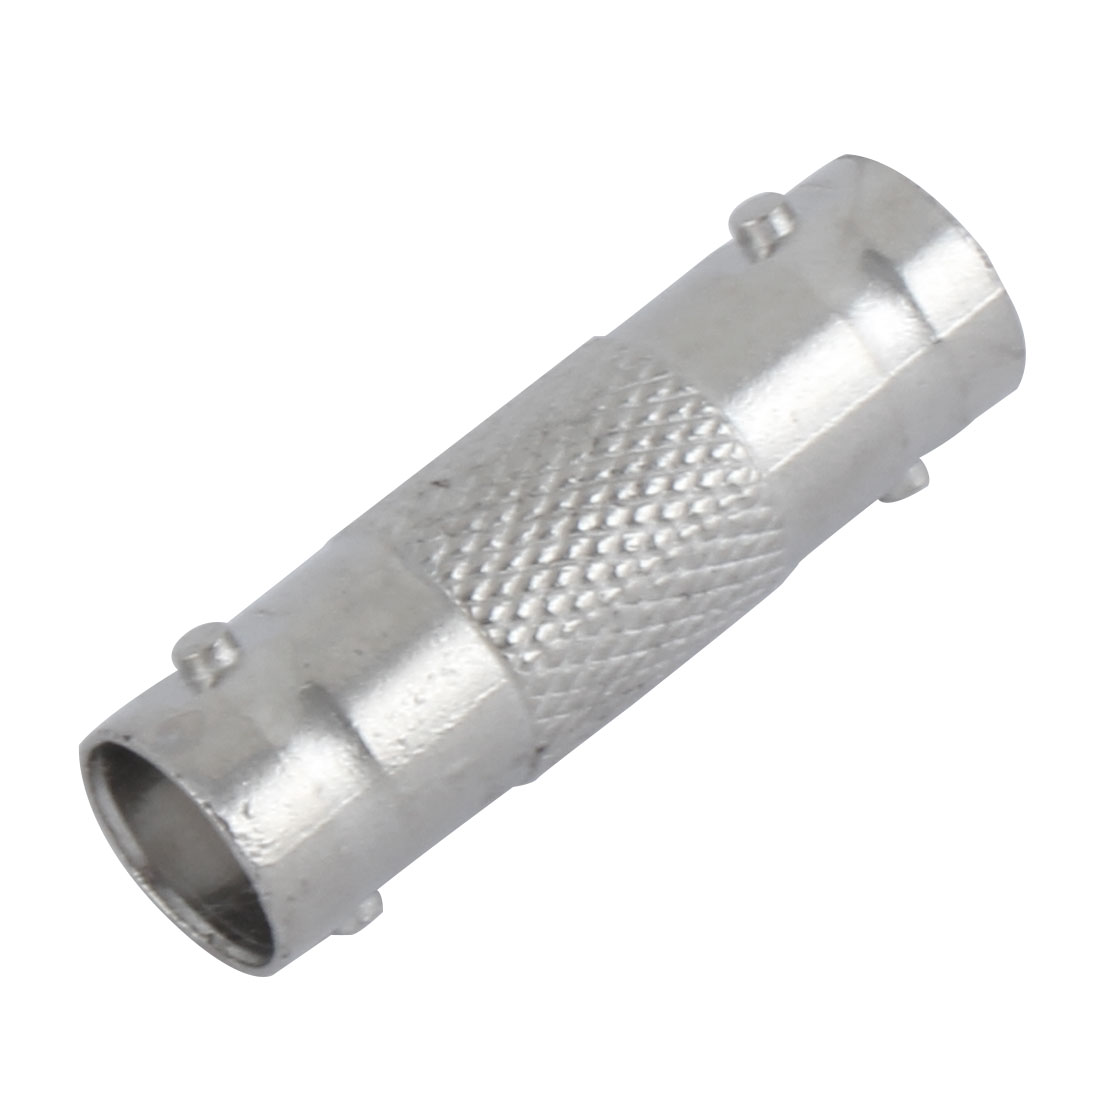 Household Female to Female In-line BNC Splice Connector Adapter Silver Tone